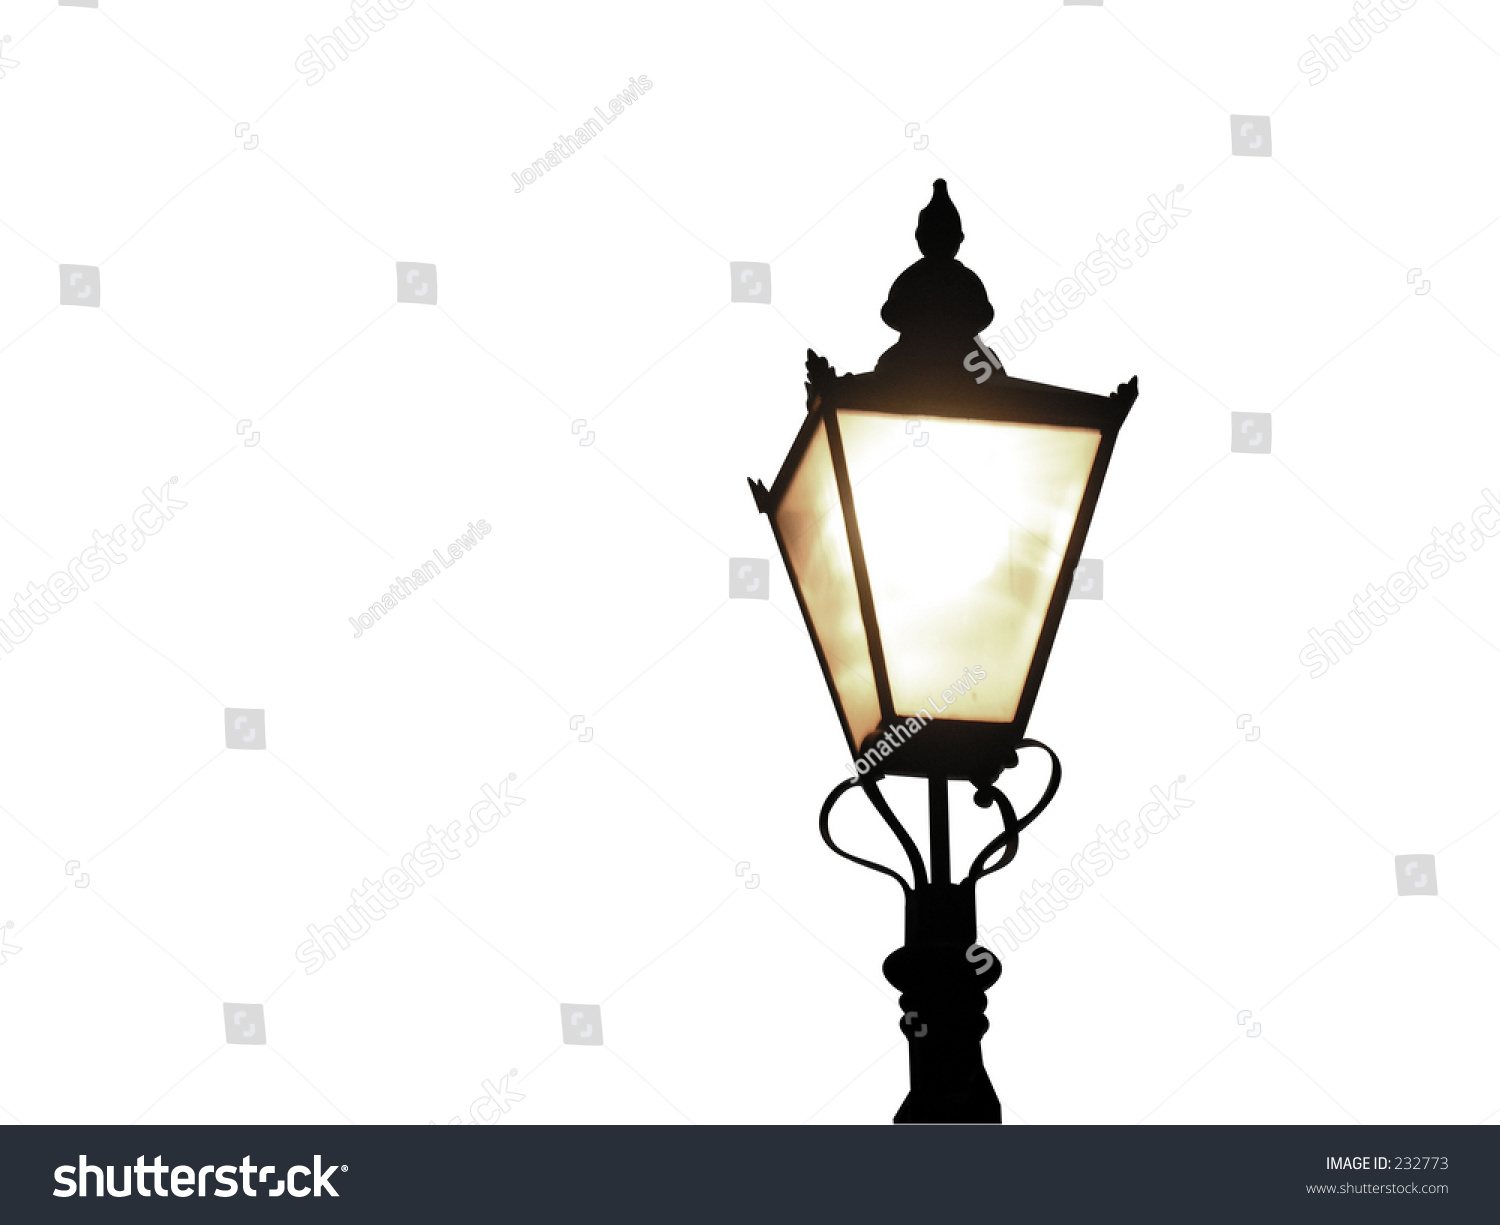 Old Fashioned Street Lamp Isolated Stock Photo 232773 - Shutterstock